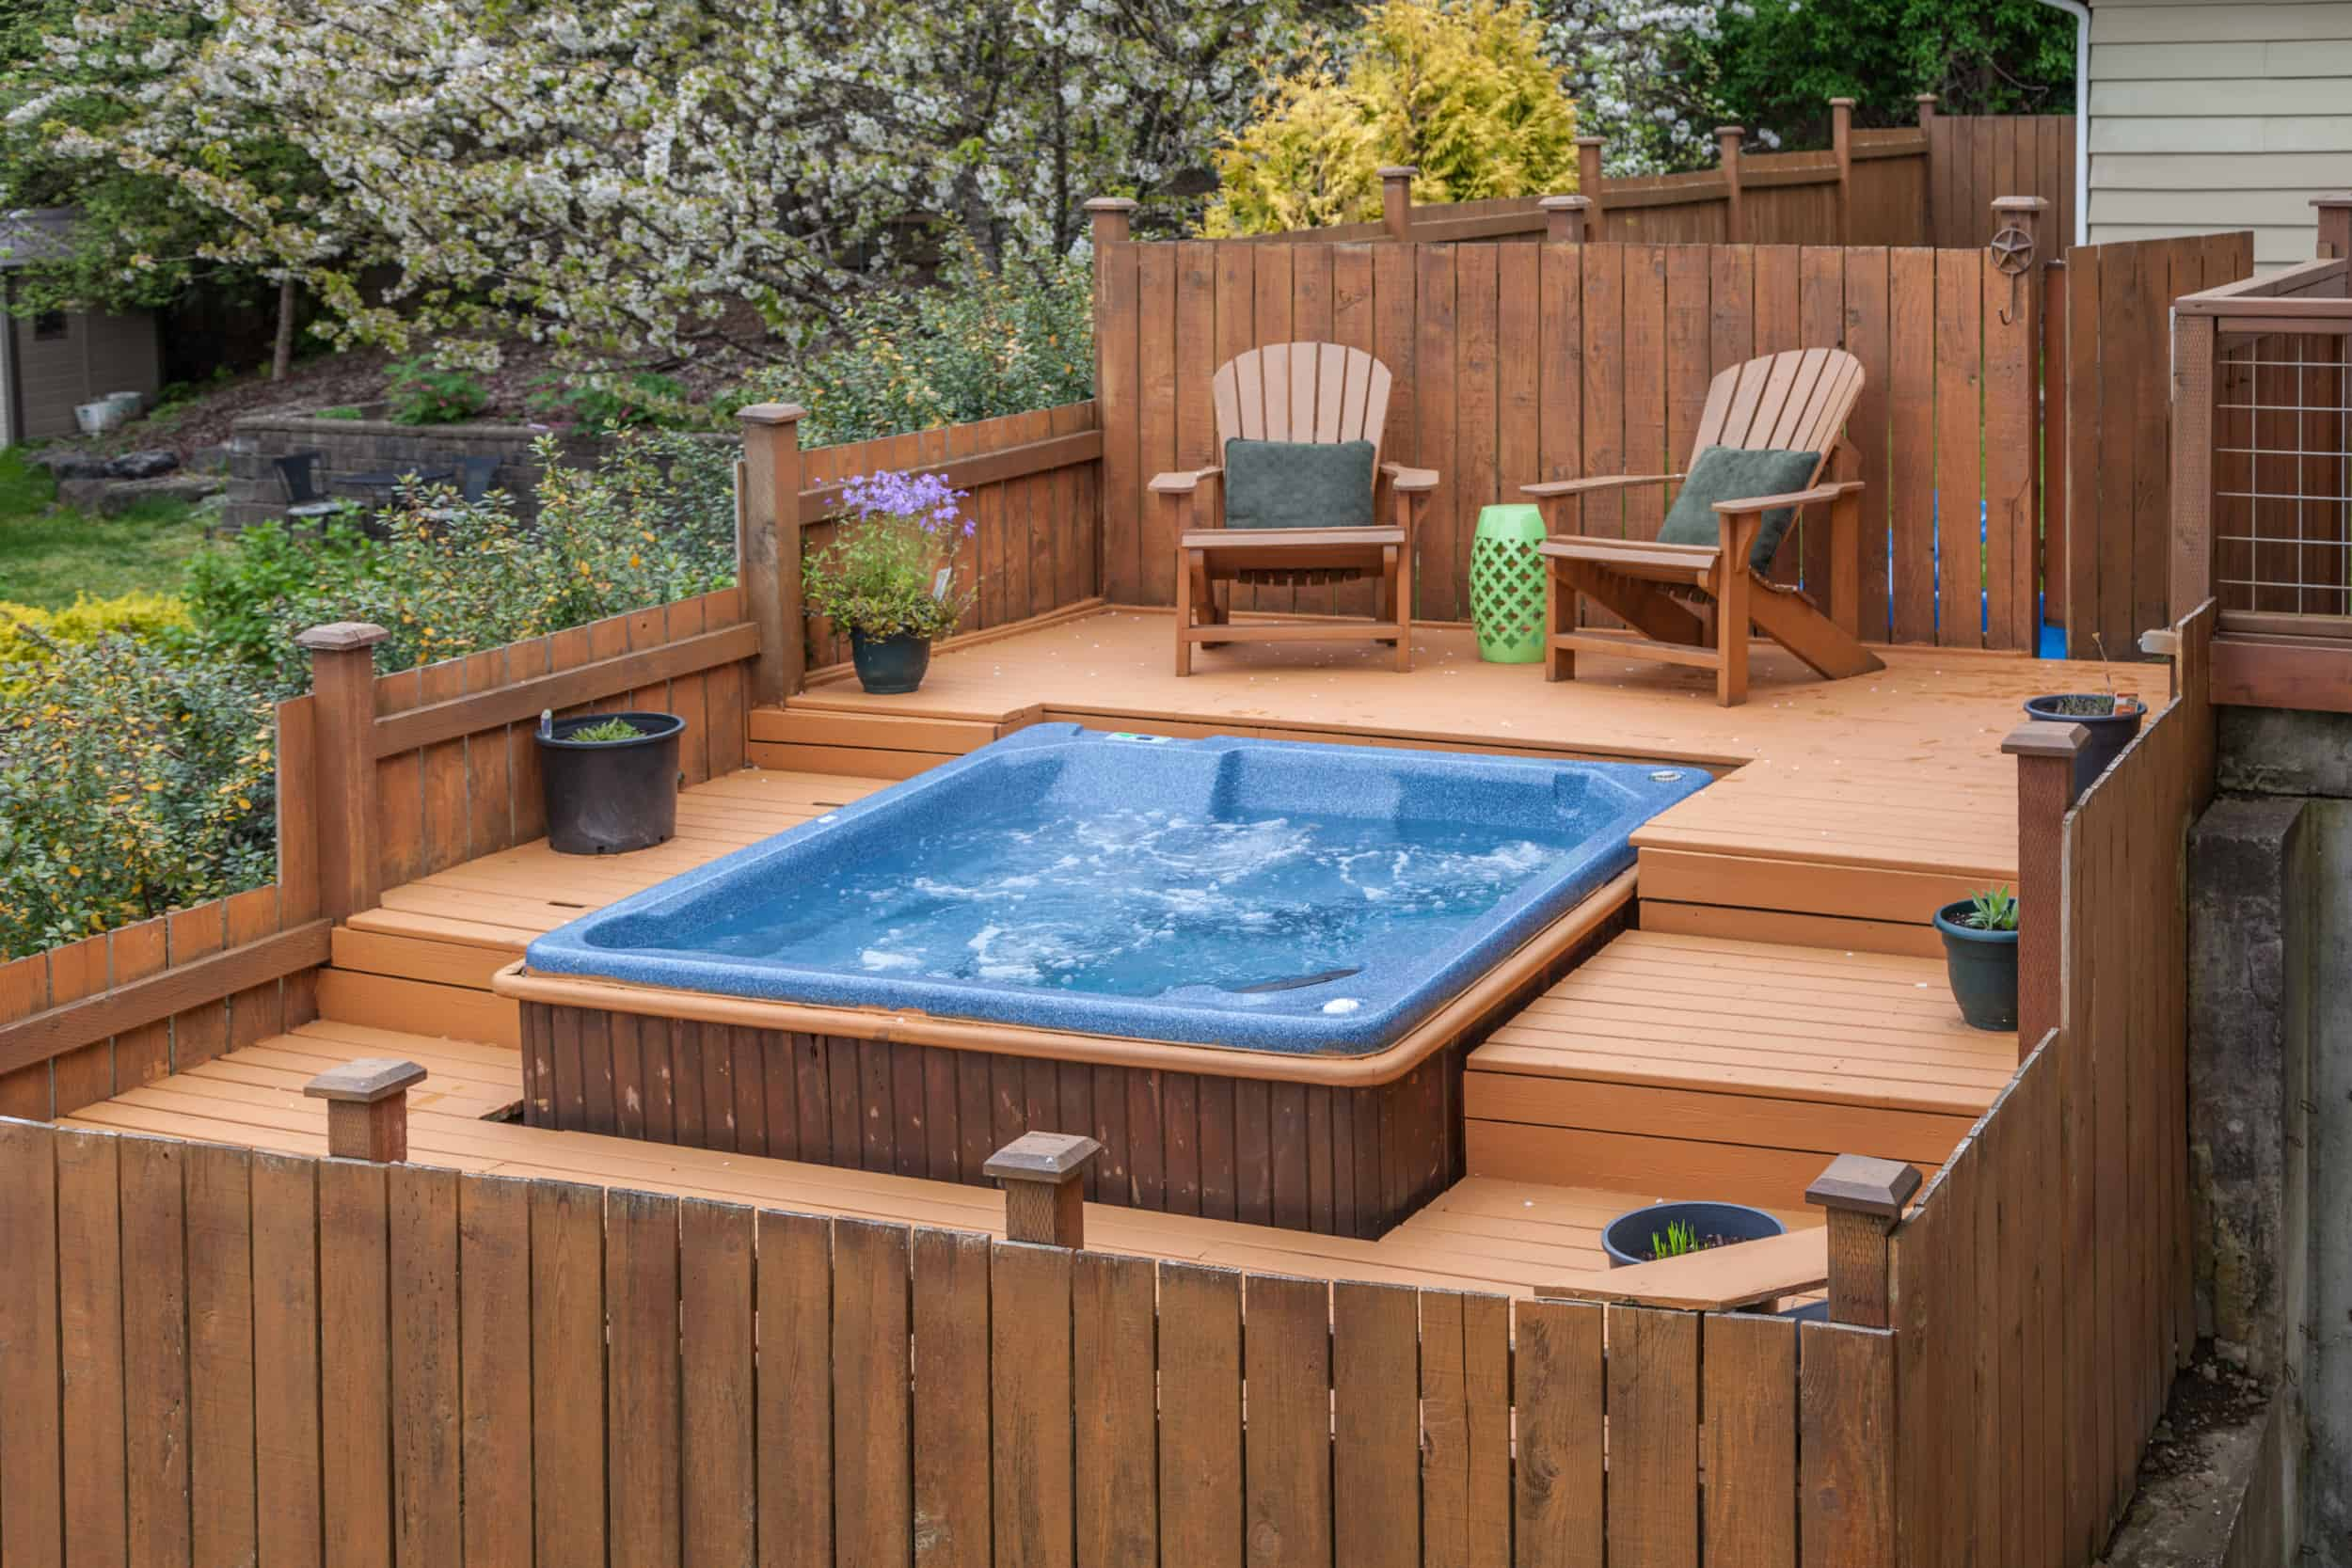 Can I Add a Hot Tub to My Deck? - Decks & Docks Lumber Co. on Deck And Hot Tub Ideas  id=52028